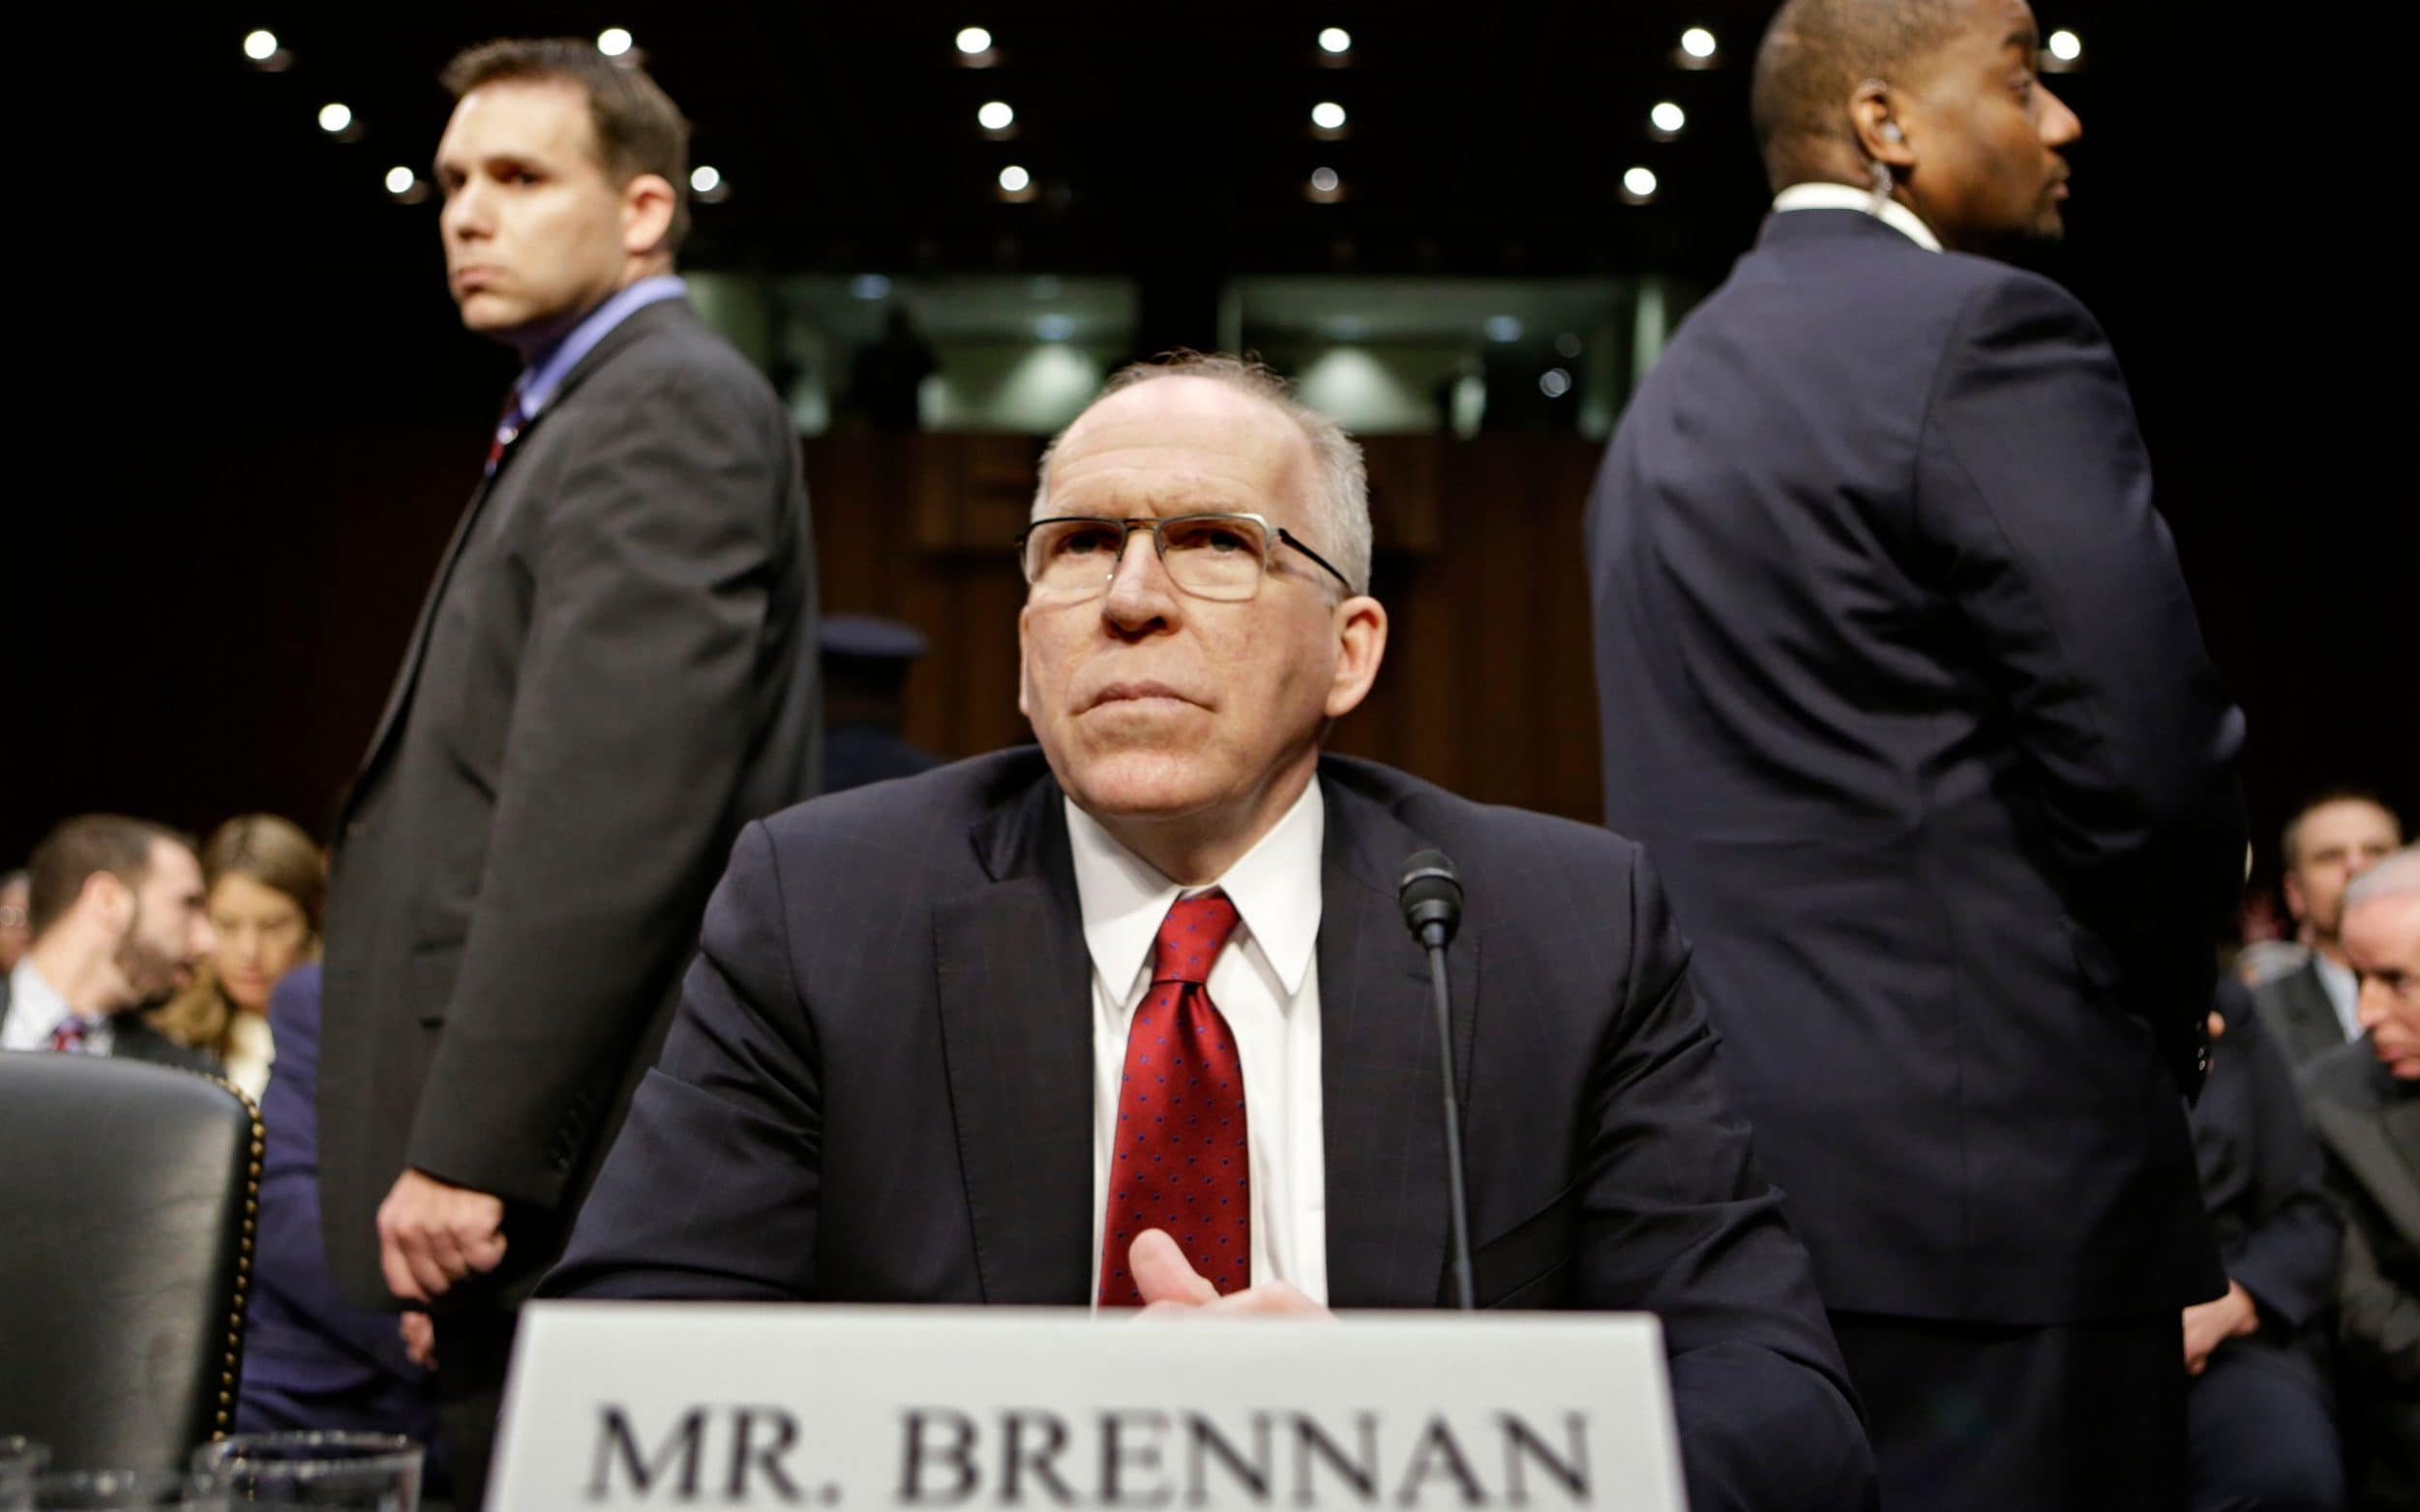 Former CIA director John Brennan was one of the officials targetted by Gamble